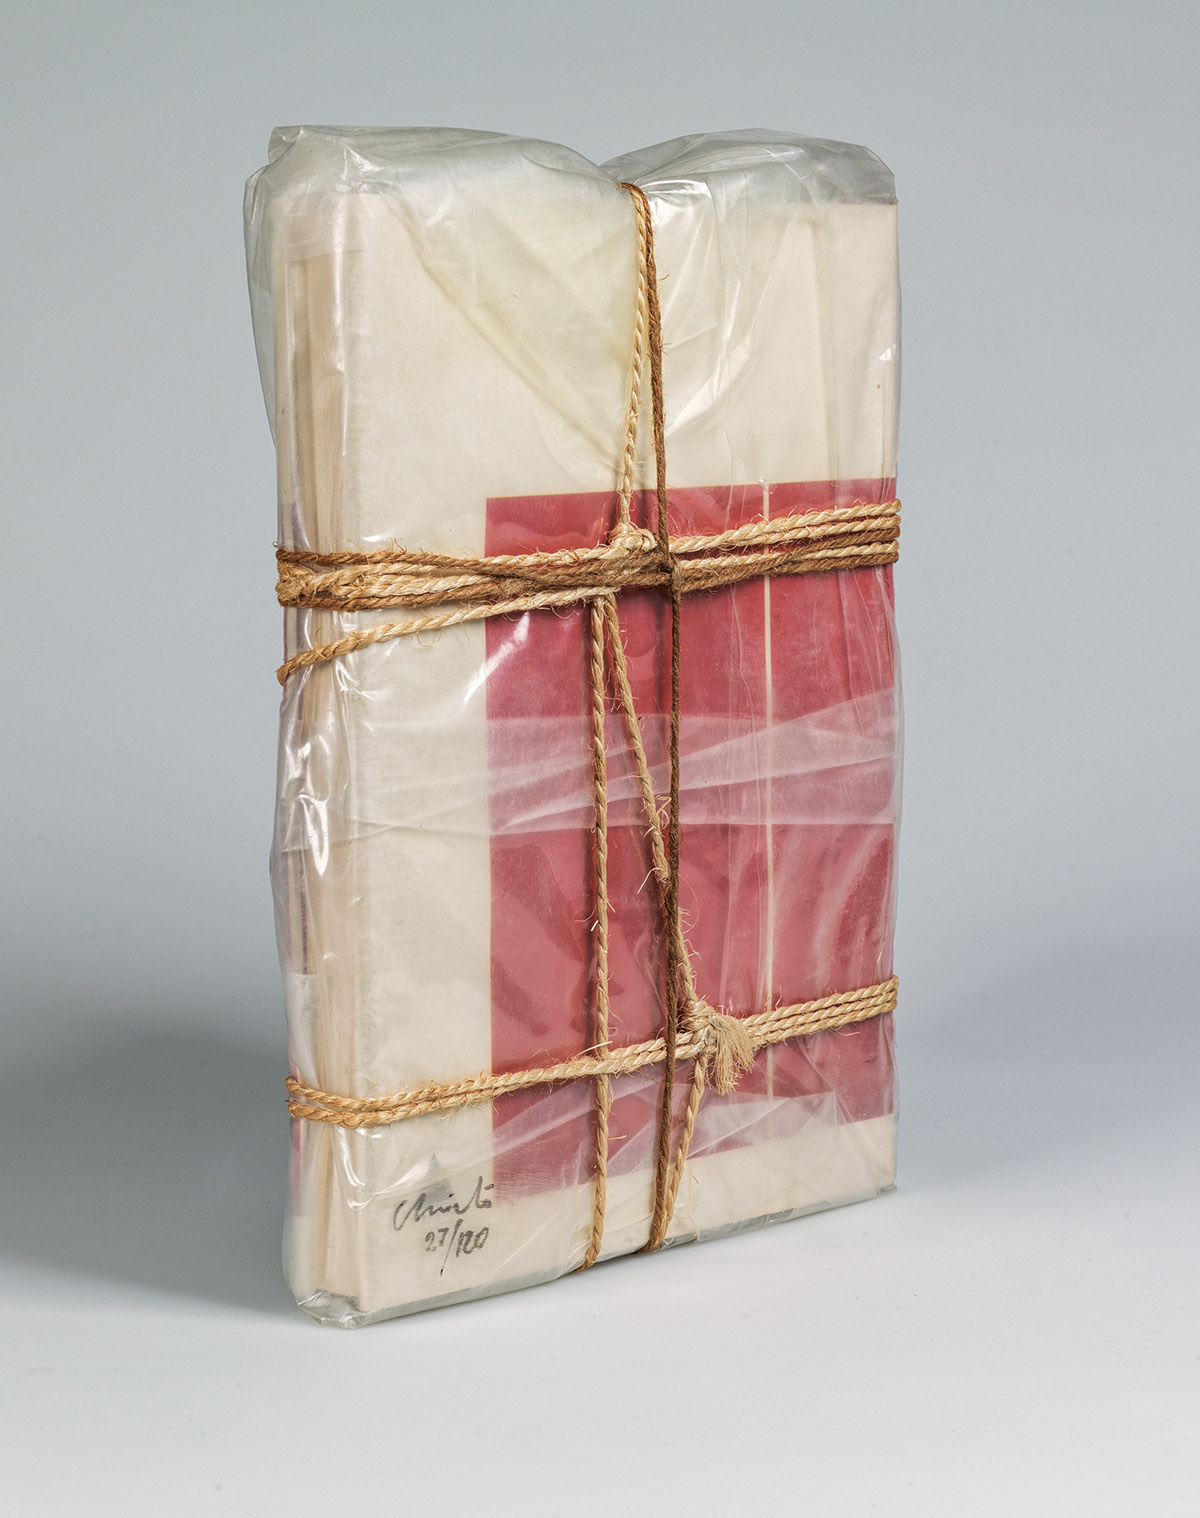 CHRISTO Wrapped Book Modern Art.